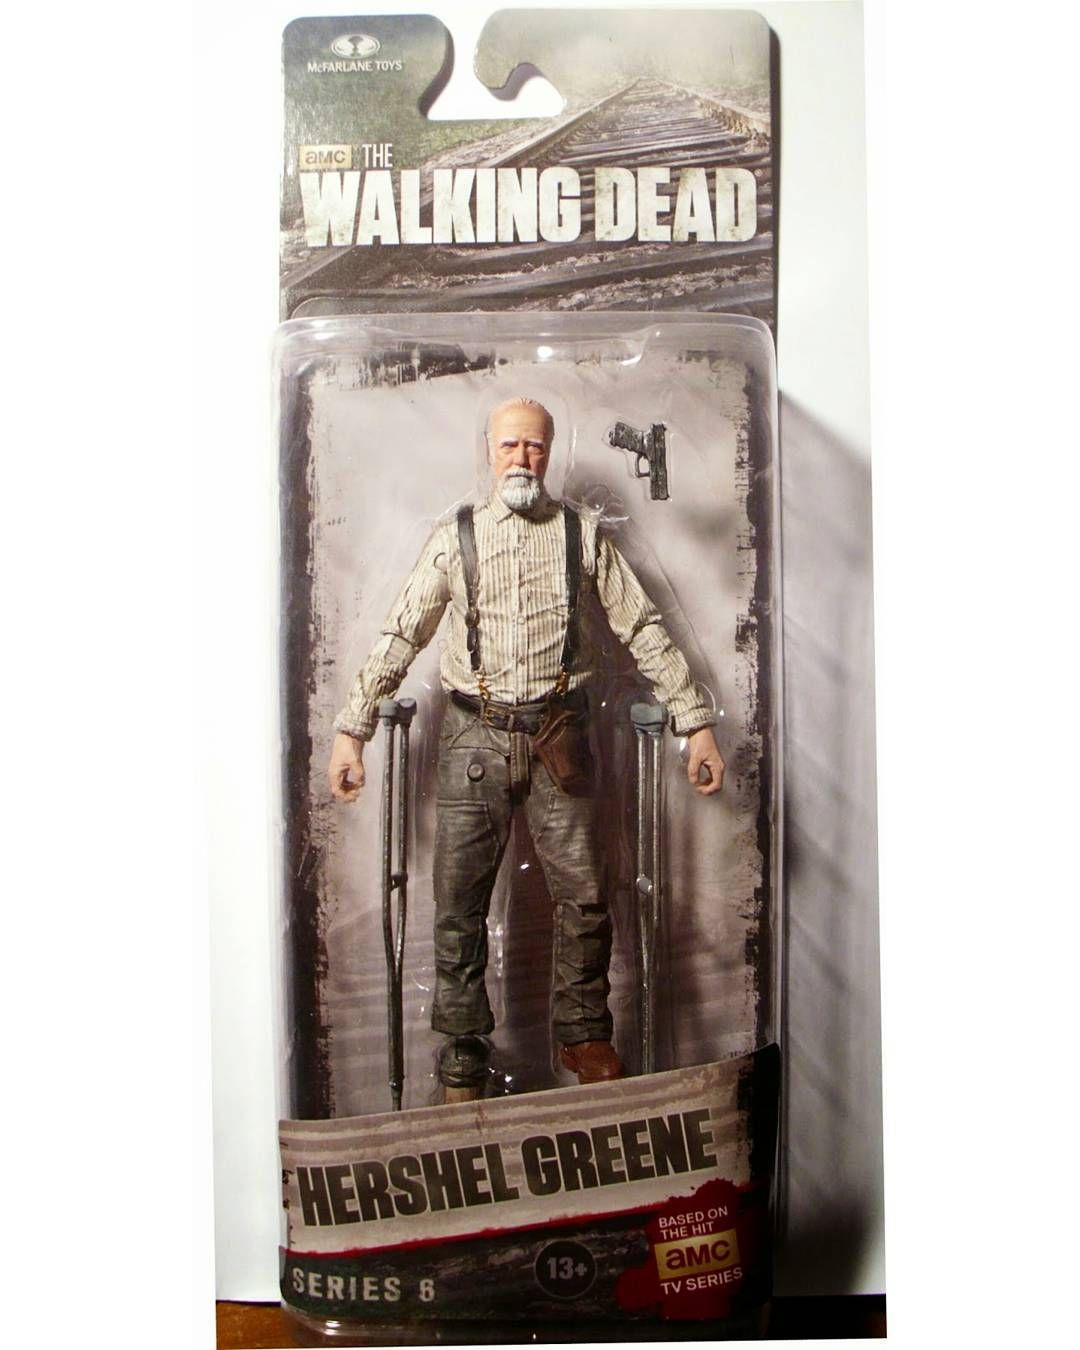 #The #Walking #Dead #Tv #Series  #Hershel #Greene #Series #6  #McFarlane #Toys #actionfigures #action #figures #figuras #ação #toy